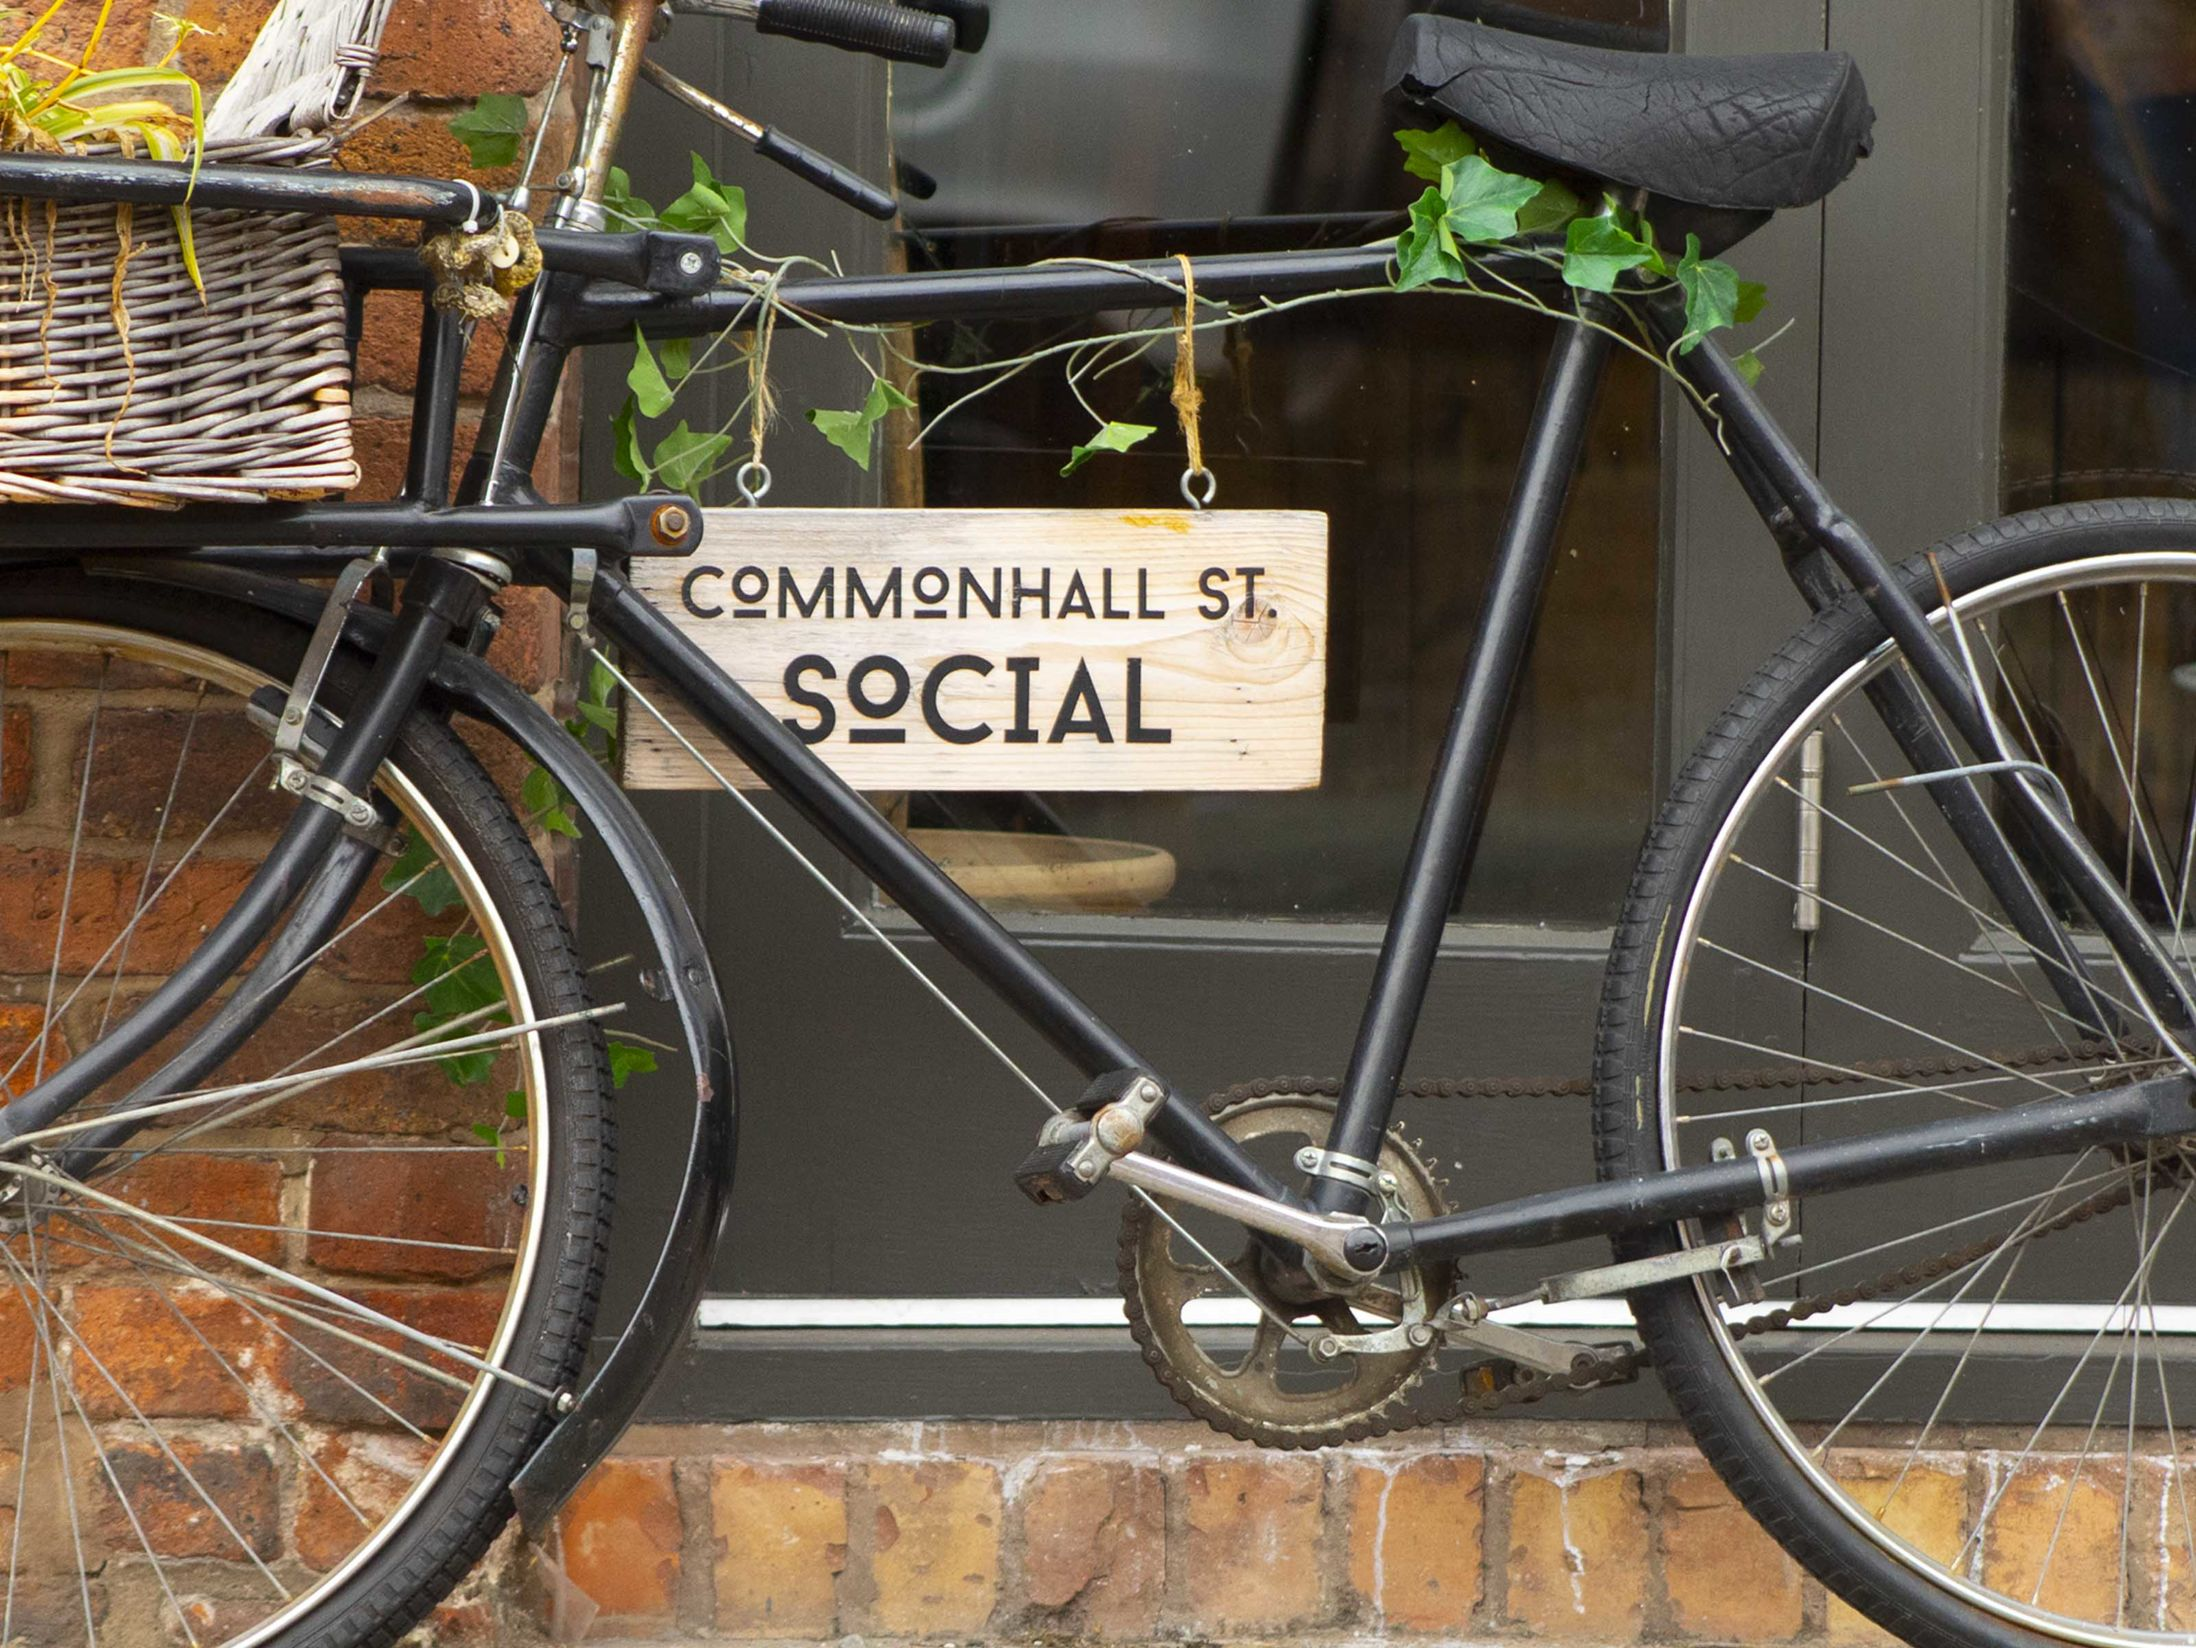 Commonhall Street Social - Best Bars in Chester